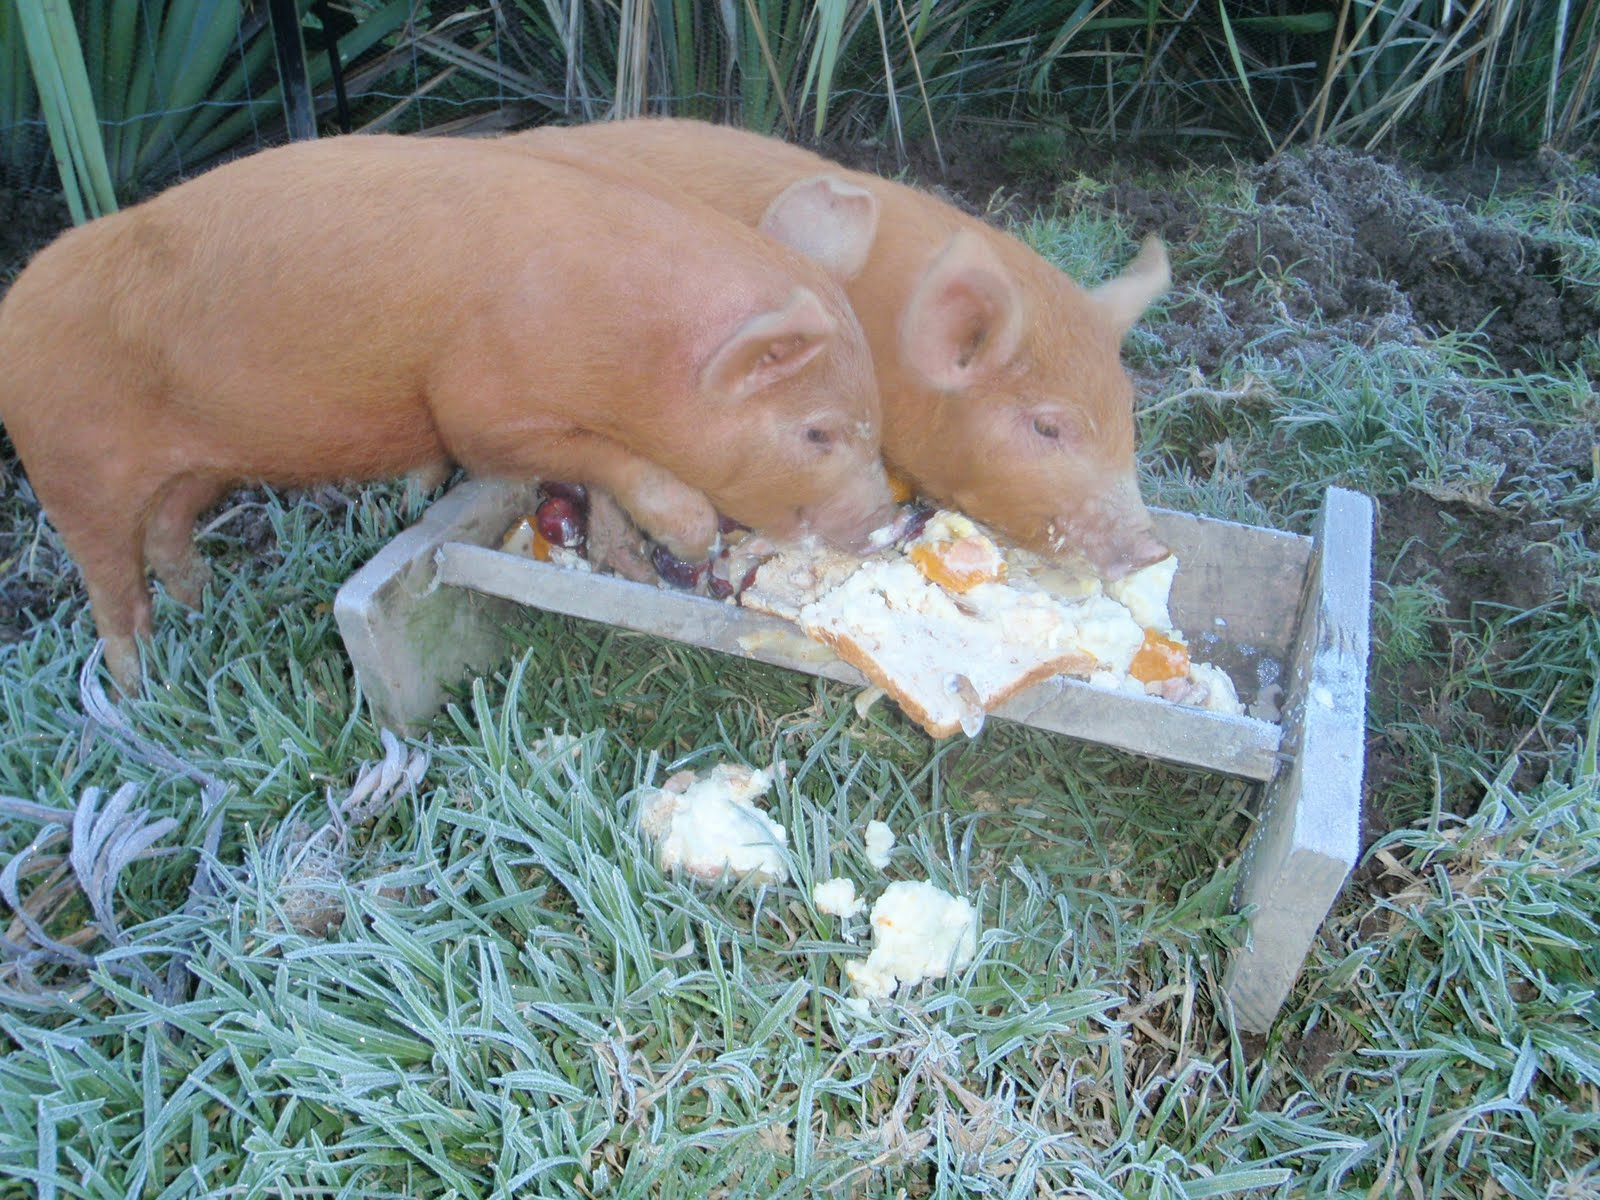 Pigs at the trough